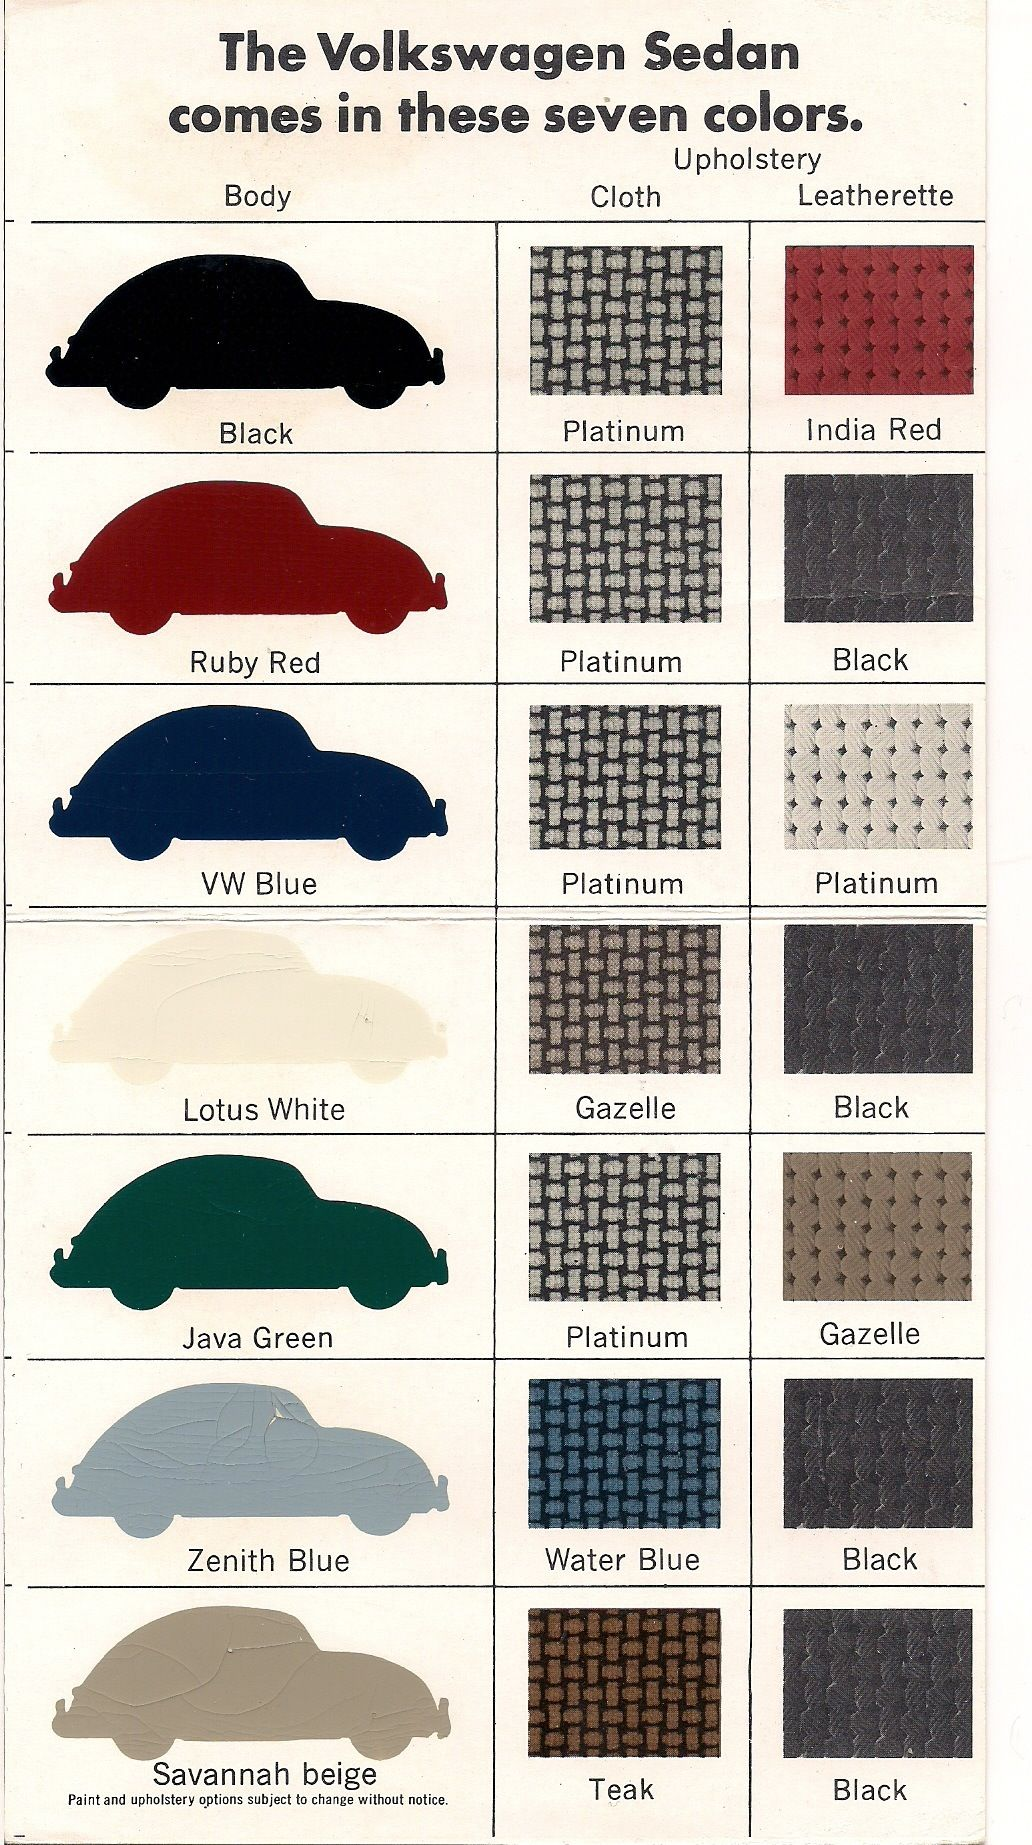 67 Beetle – It Comes in 7 Colors | Pinterest | Beetles, Vw and ...